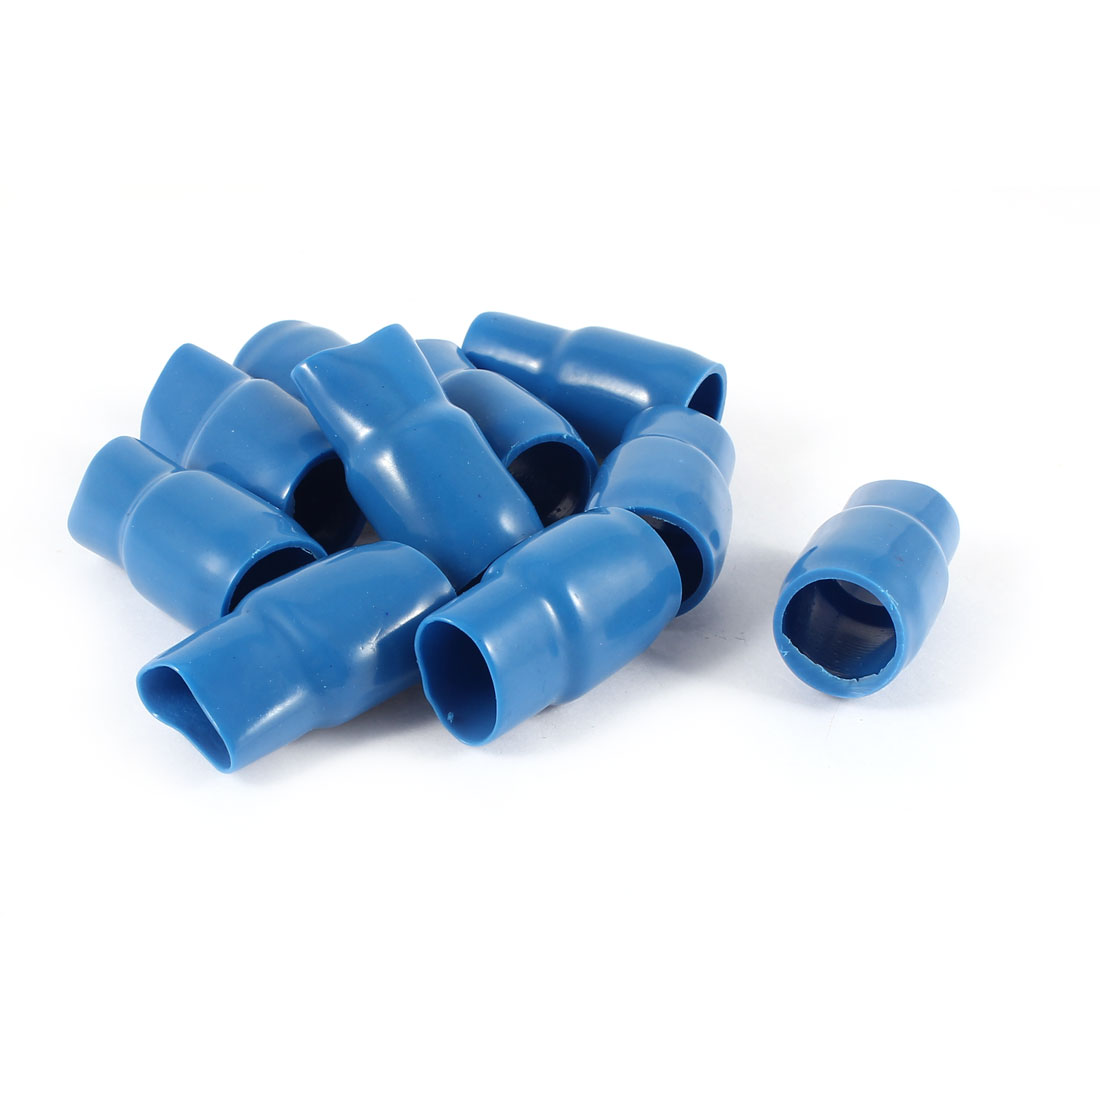 10 Pcs Blue Soft PVC Wire V-60 50mm2 Crimp Terminal End Insulated Sleeves Caps Cover